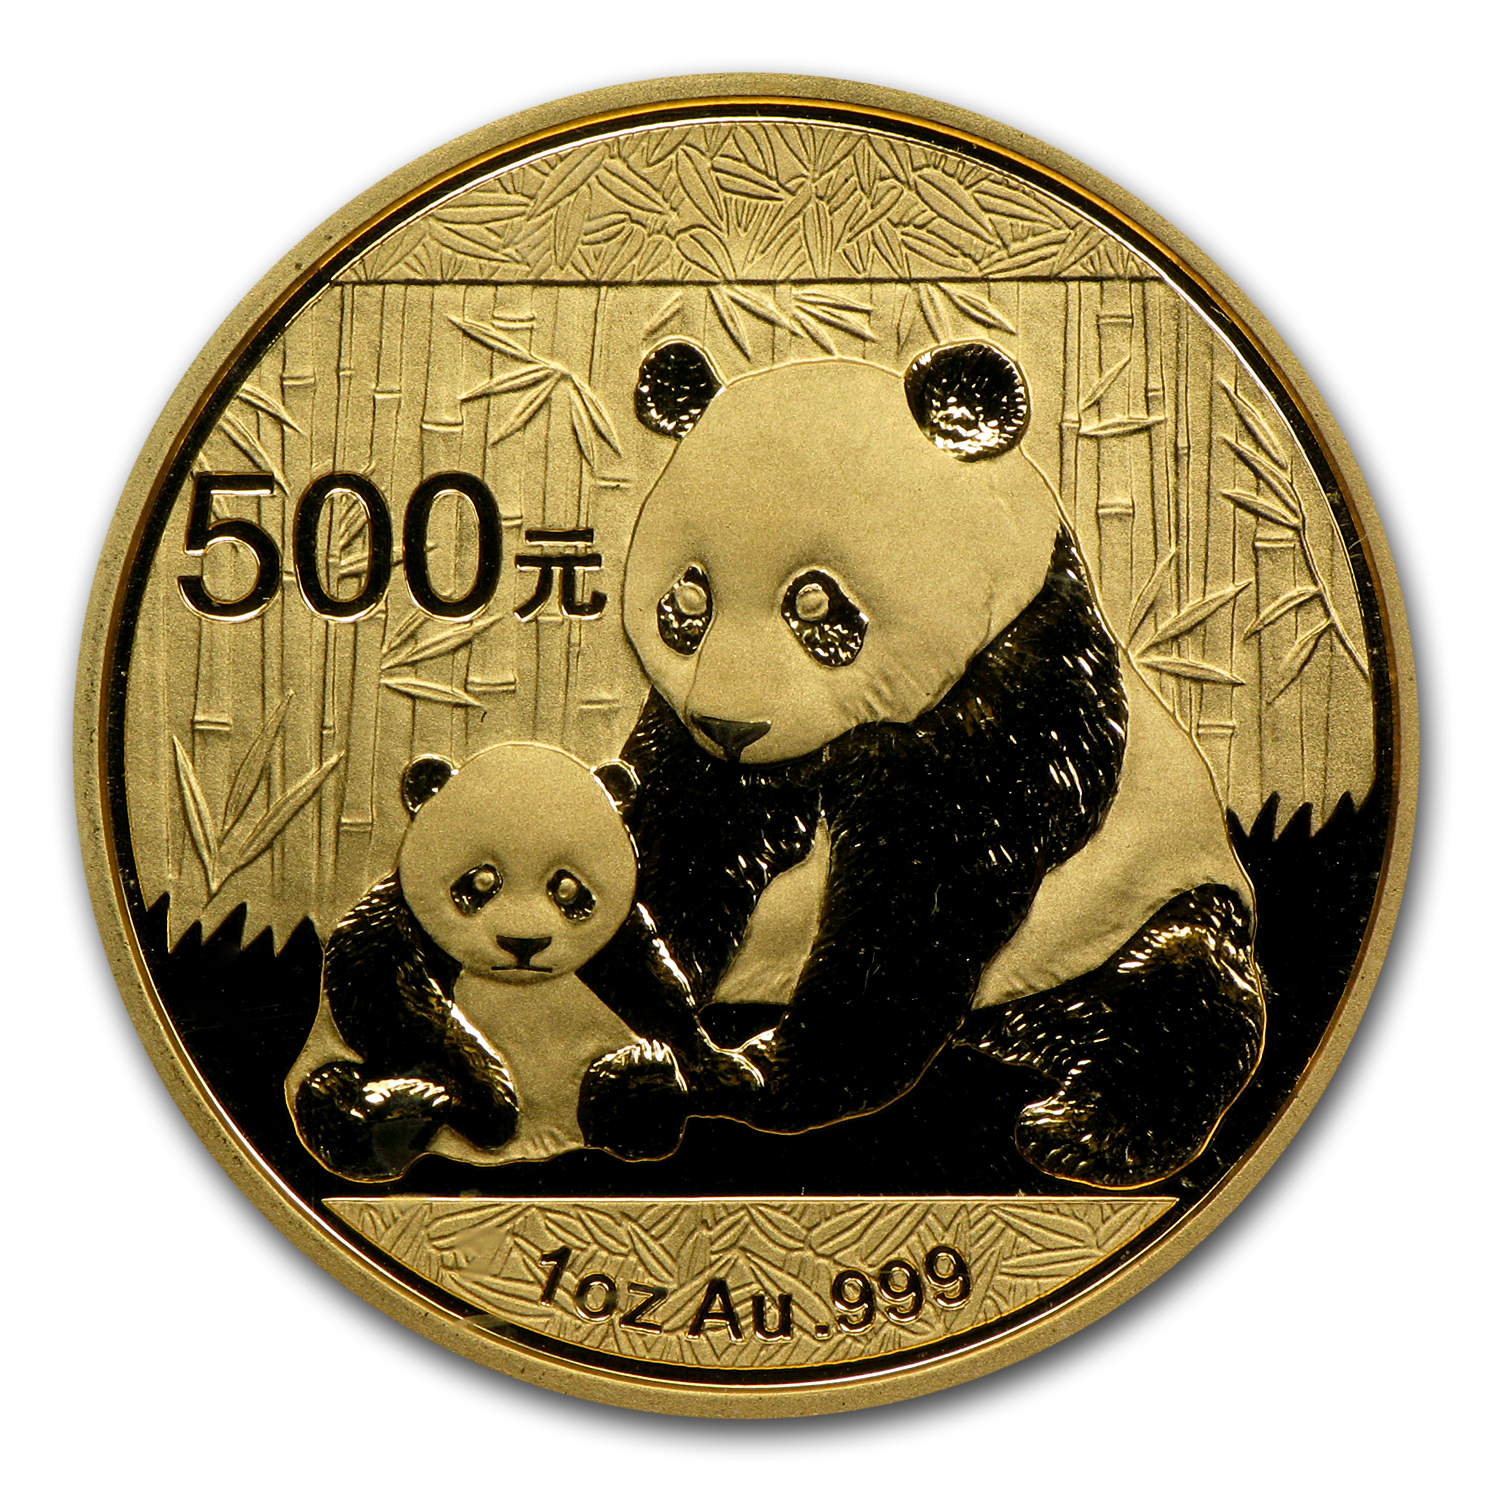 2012 1 oz Gold Chinese Panda MS-70 PCGS